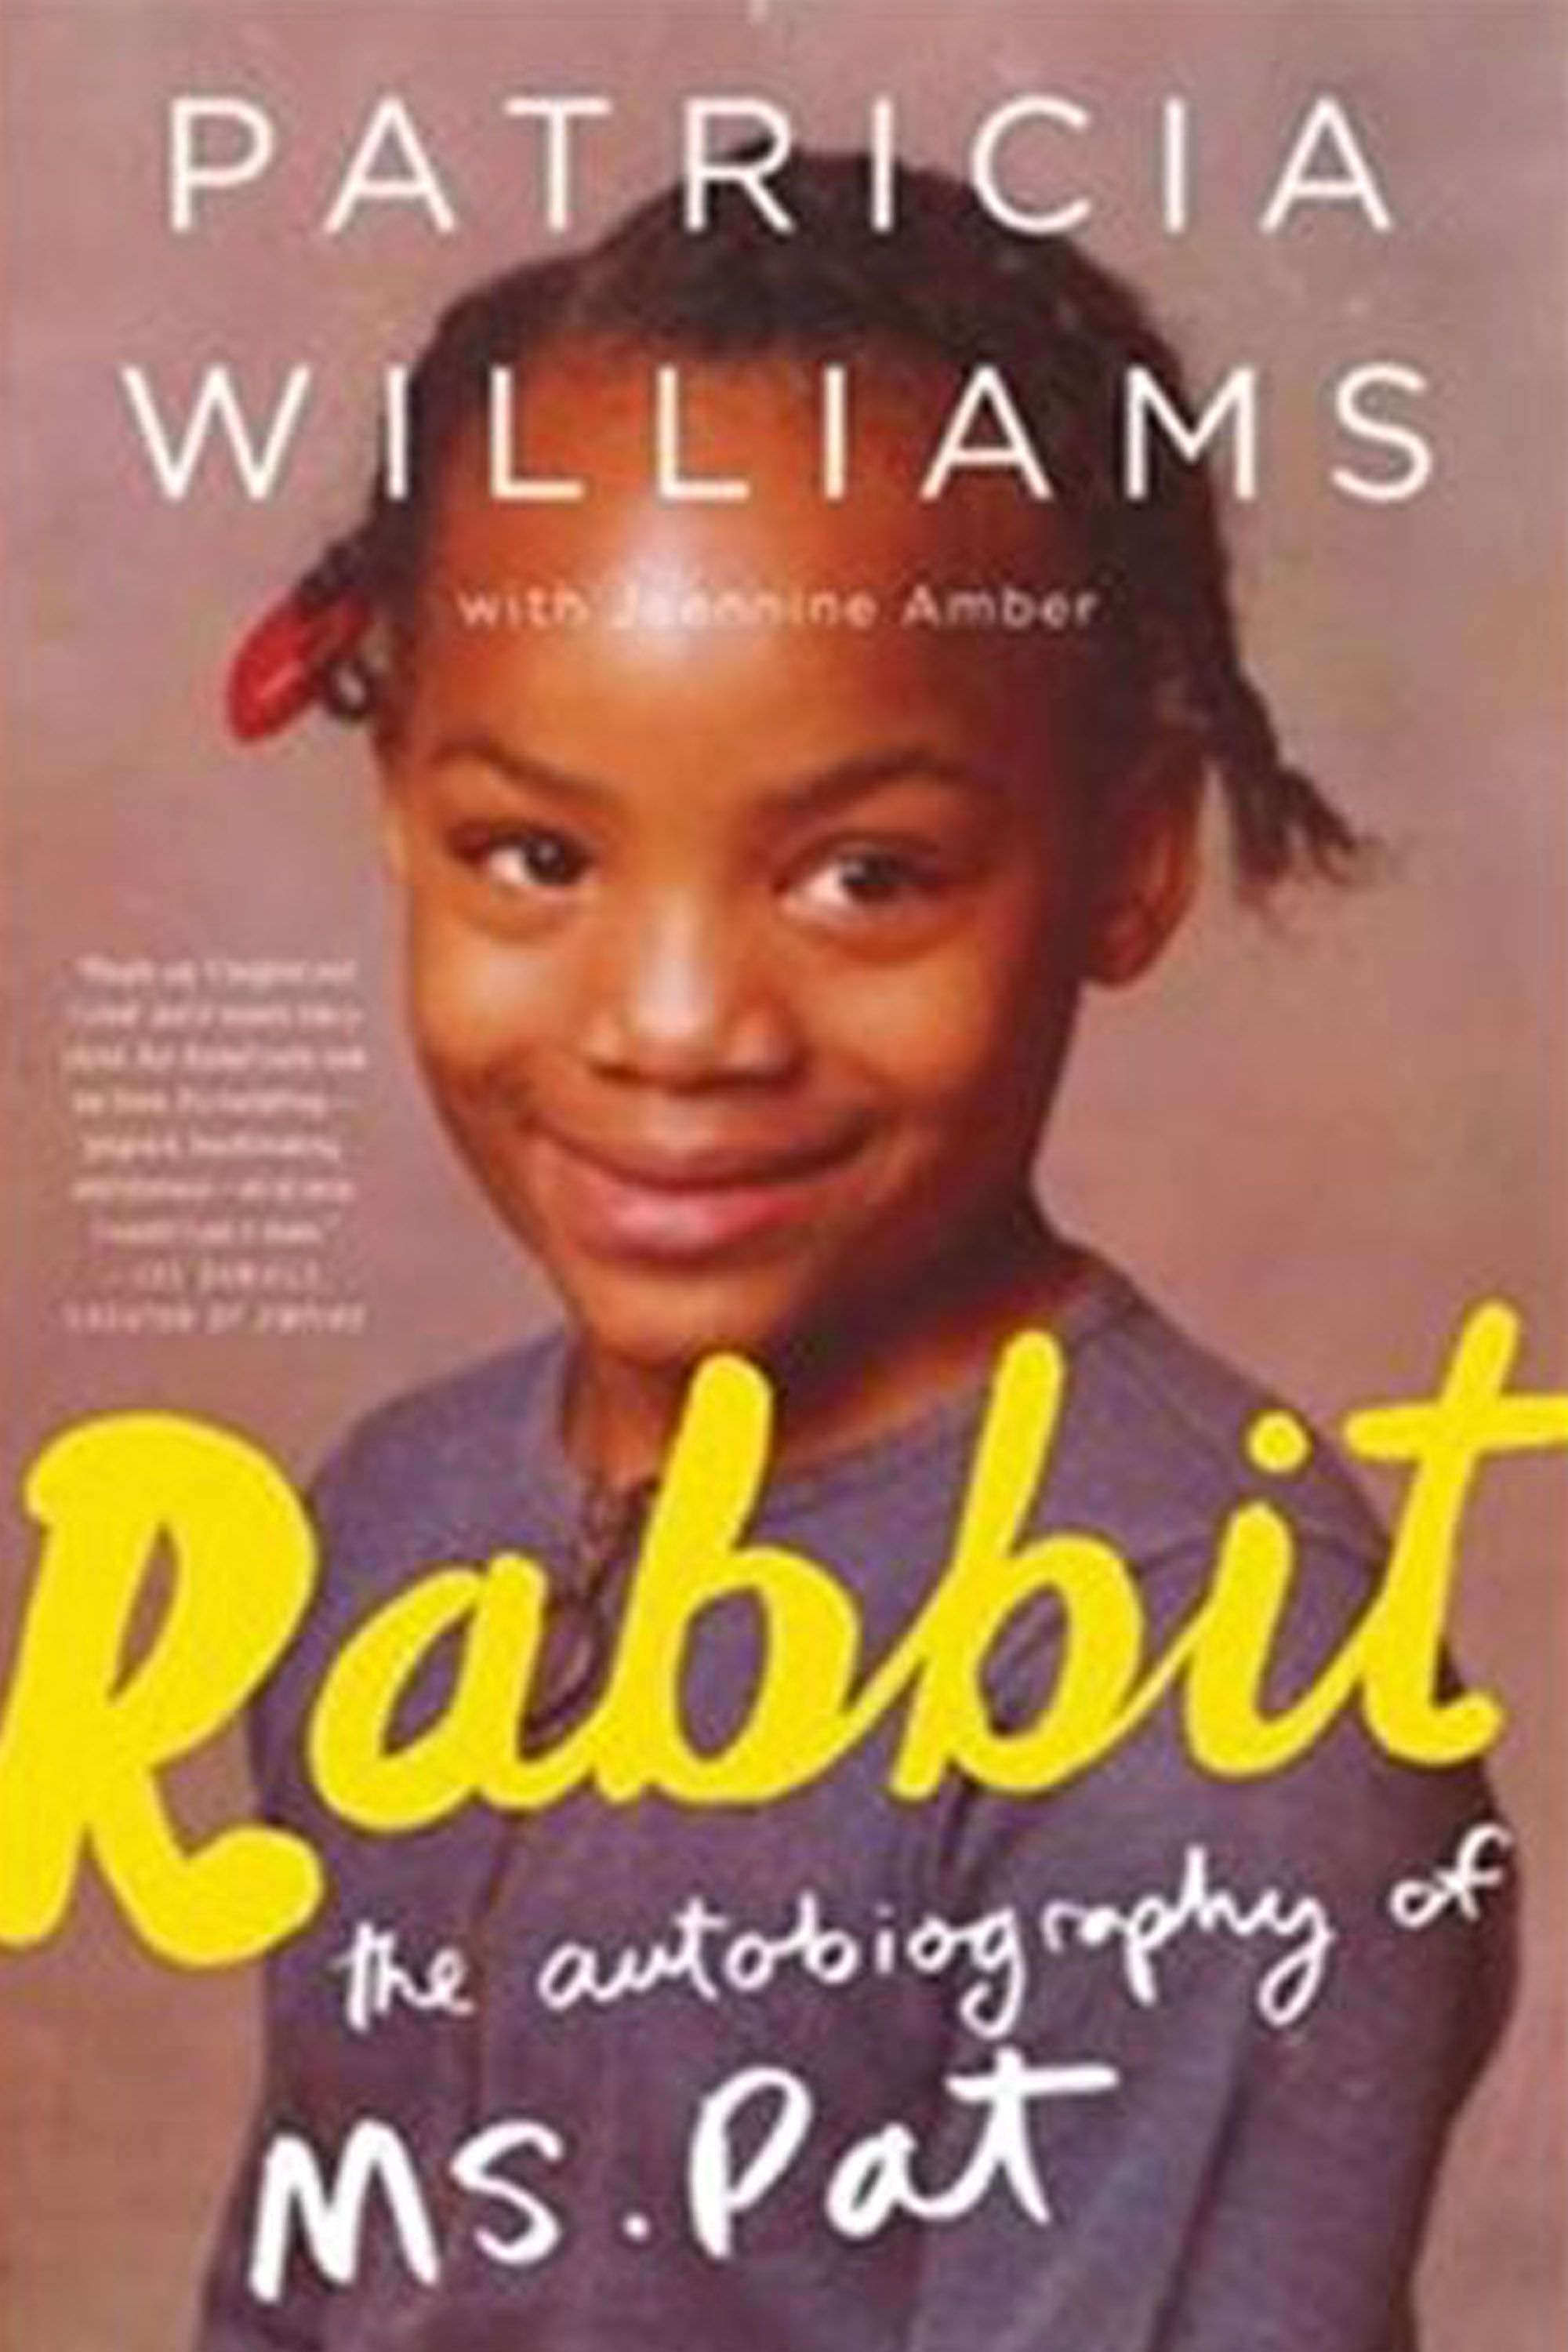 "<p>""I know a lot of people think they know what it's like to grow up in the hood,"" writes Patricia Williams (the titular Rabbit),&nbsp&#x3B;""Like maybe they watched a couple of seasons of&nbsp&#x3B;<em data-redactor-tag=""em"">The Wire&nbsp&#x3B;</em>and they got the shit all figured out. But TV doesn't tell the whole story."" The comedian's&nbsp&#x3B;frank, account of growing up in Atlanta&nbsp&#x3B;<span class=""redactor-invisible-space"" data-verified=""redactor"" data-redactor-tag=""span"" data-redactor-class=""redactor-invisible-space""></span>amid the crack epidemic&nbsp&#x3B;fills in the blanks.&nbsp&#x3B;(<a href=""https://www.amazon.com/Rabbit-Autobiography-Ms-Patricia-Williams-ebook/dp/B015MOJ7F2"" data-tracking-id=""recirc-text-link"">August 22, Dey Street Books</a>)</p>"